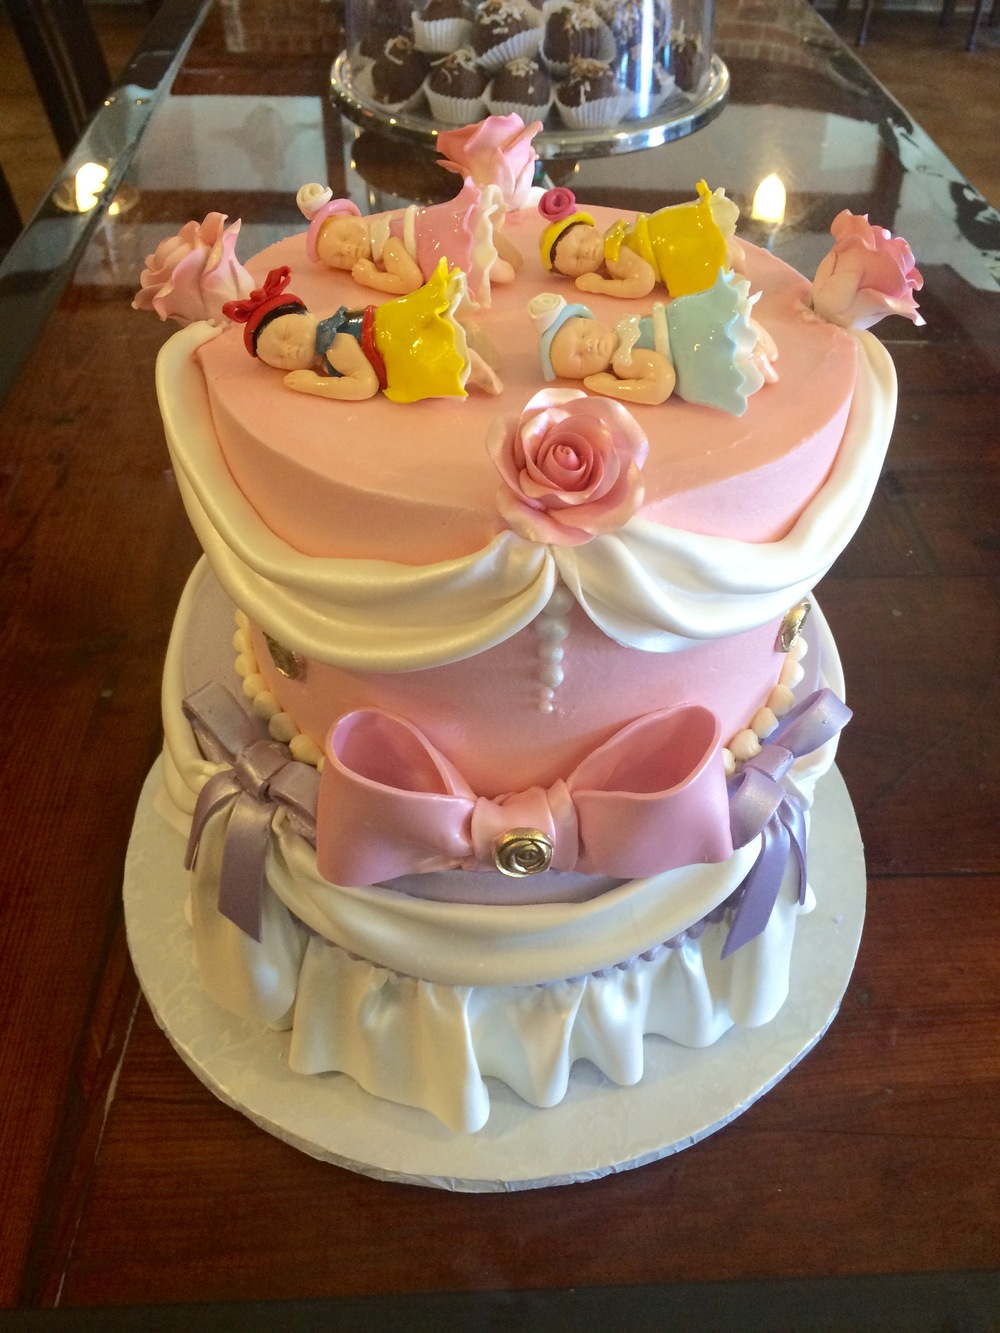 Sleeping_baby_princess_shower_cake-sugarbeesweets.jpg